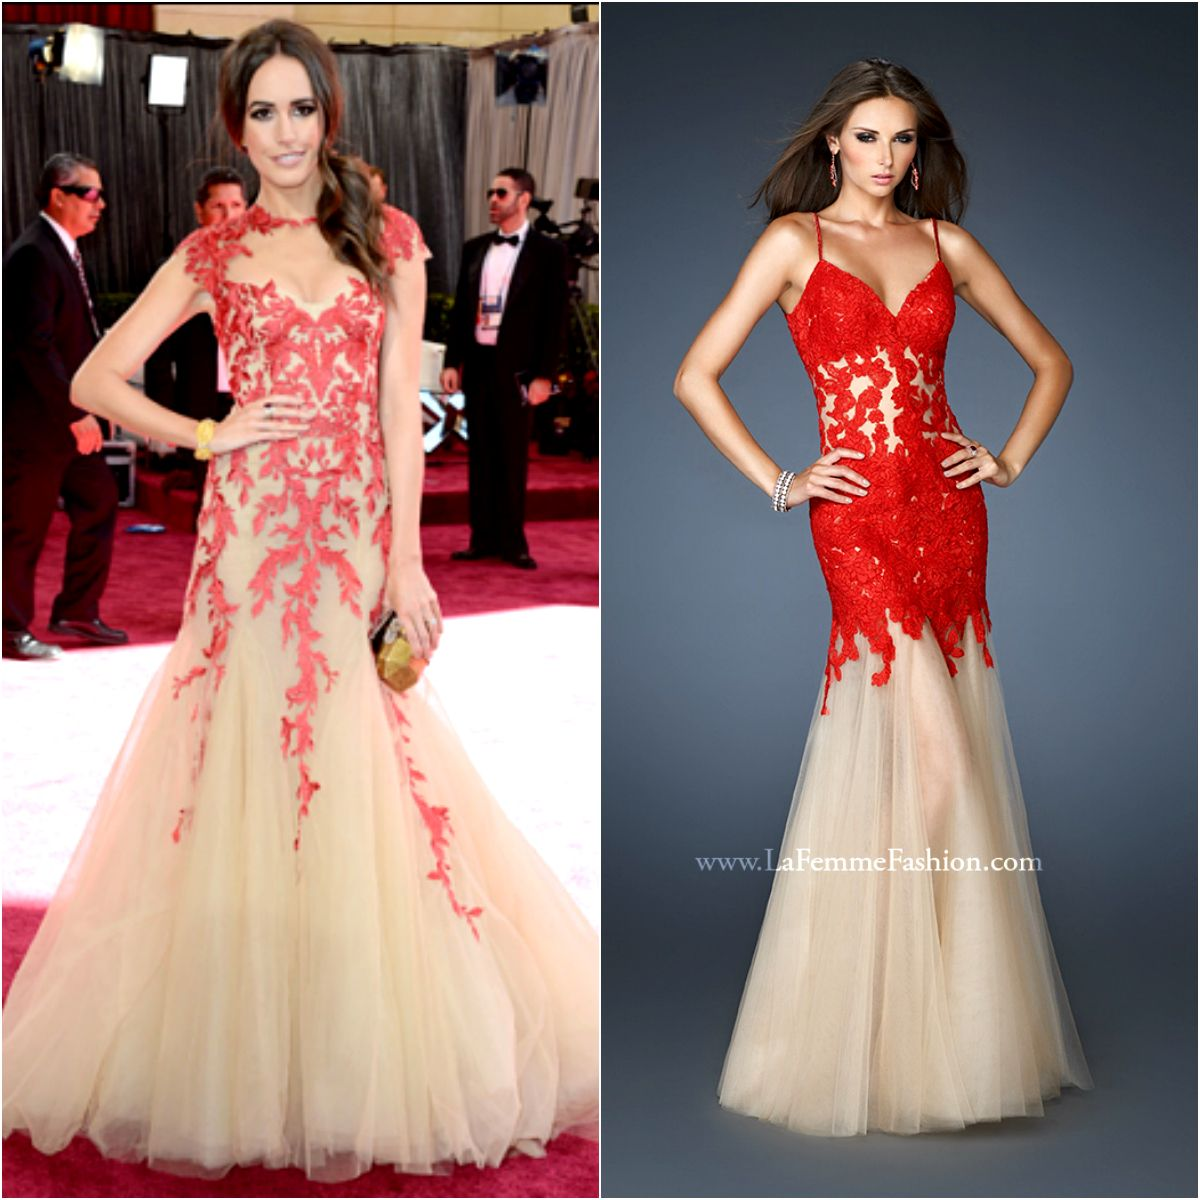 Red carpetinspired prom dresses louise roe lafemme prom